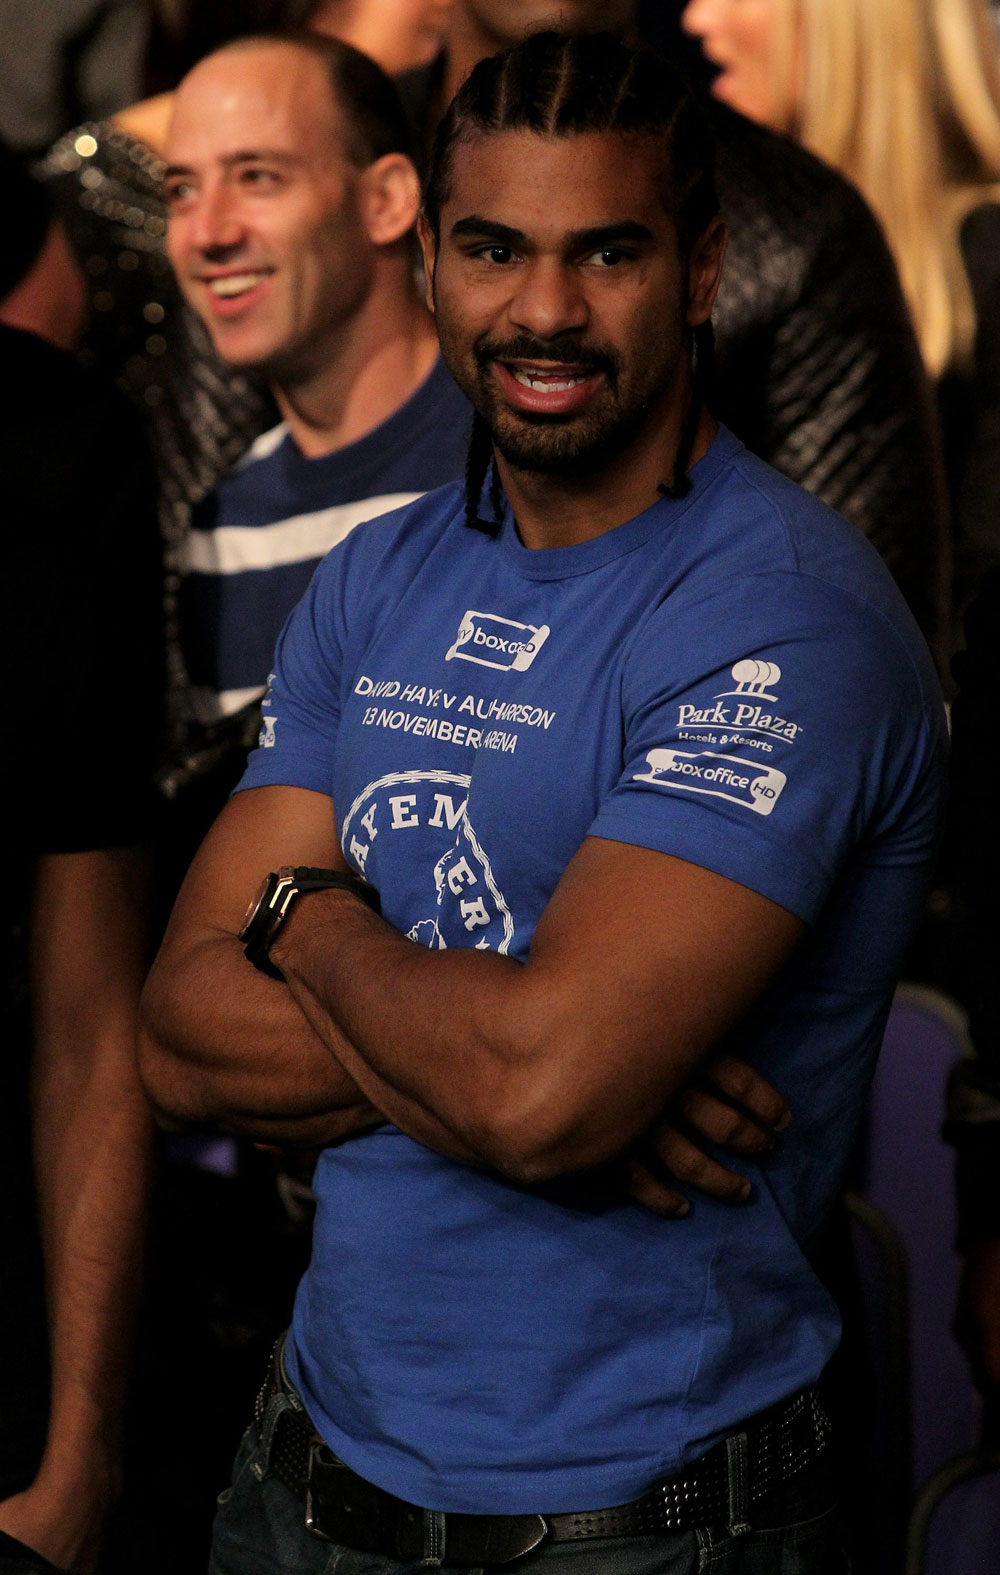 UFC 120: Boxer David Hayes watches the Kongo vs. Browne fight